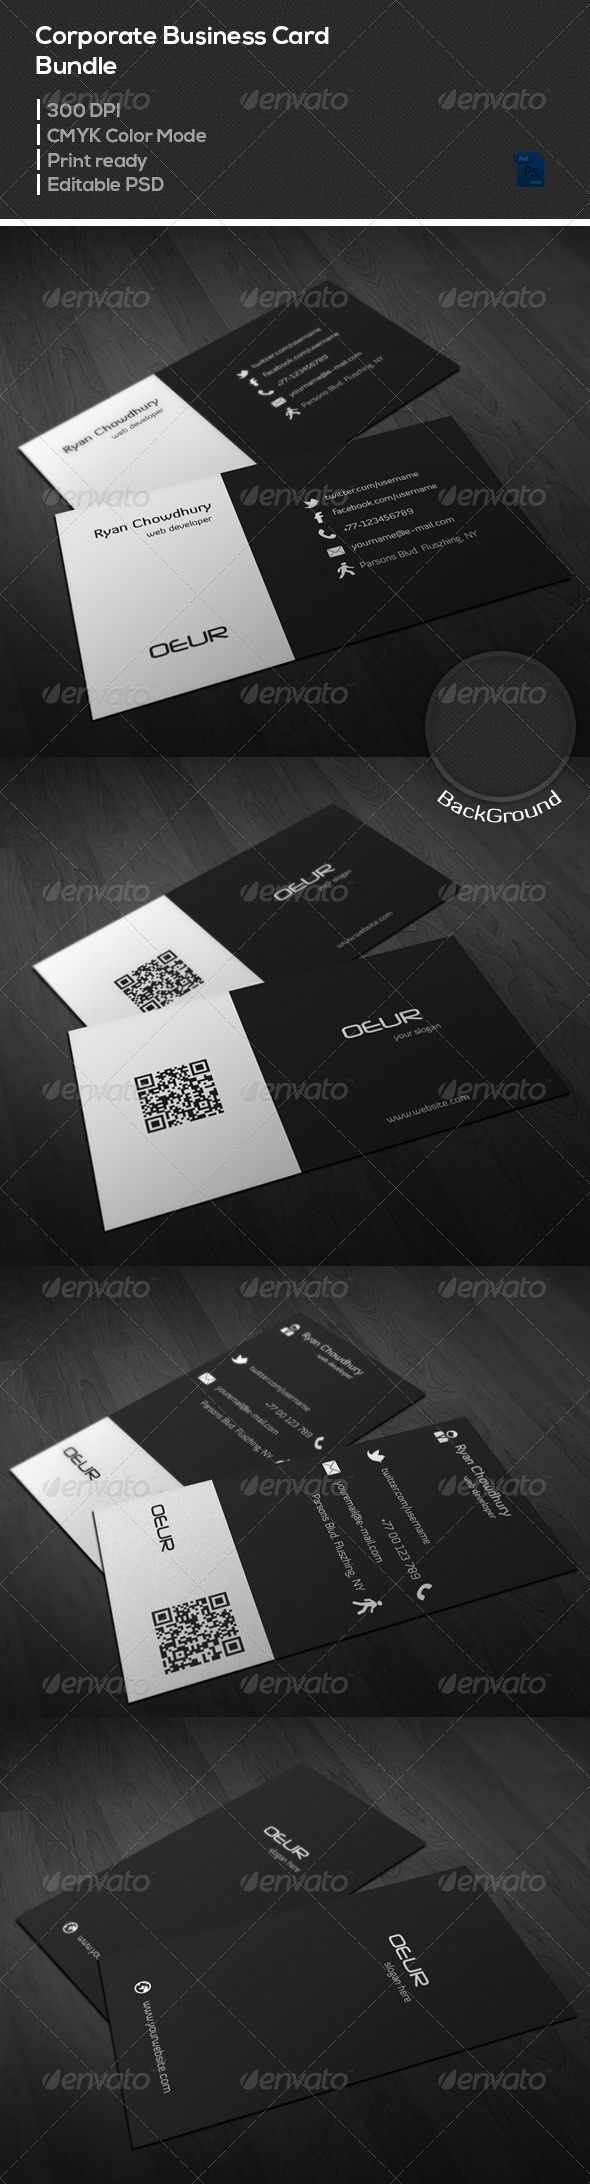 GraphicRiver Corporate Business Card Bundle 03 6962669